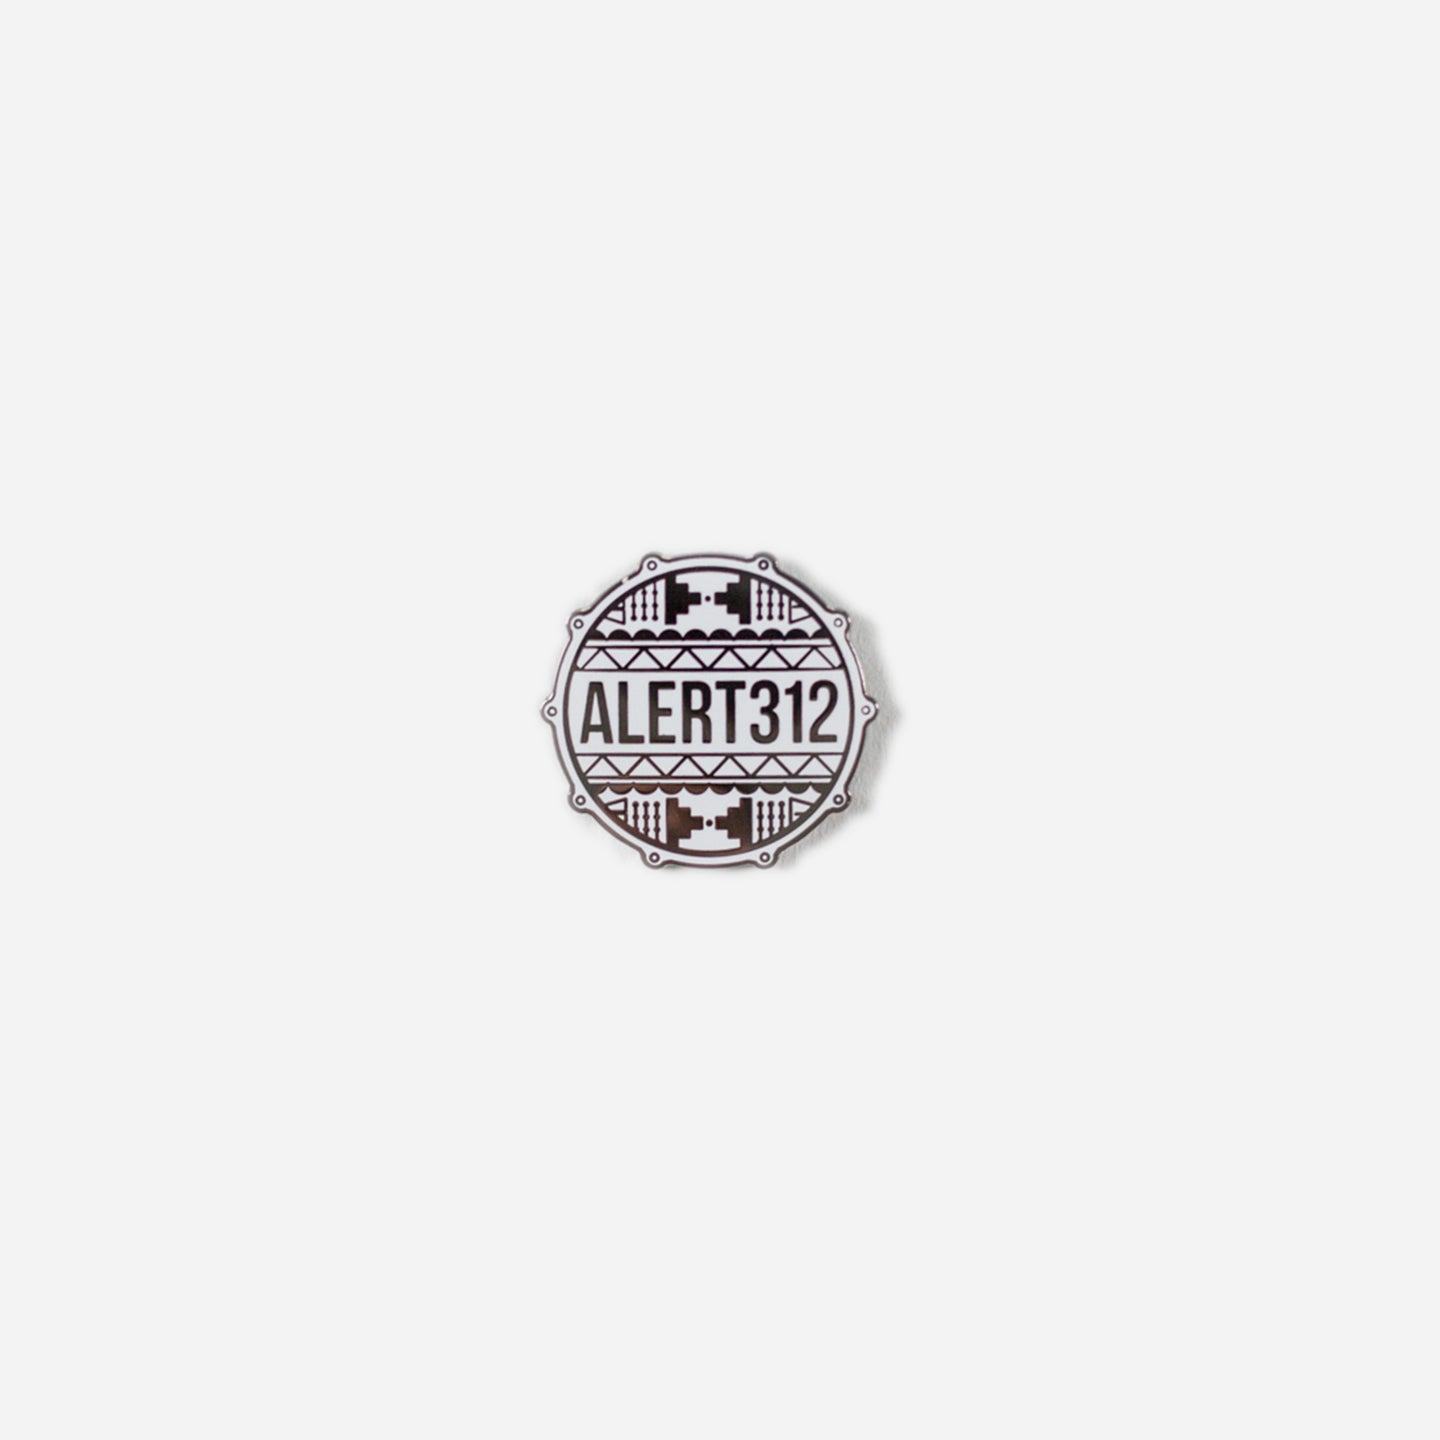 ALERT312 - Drum Head Logo Pin